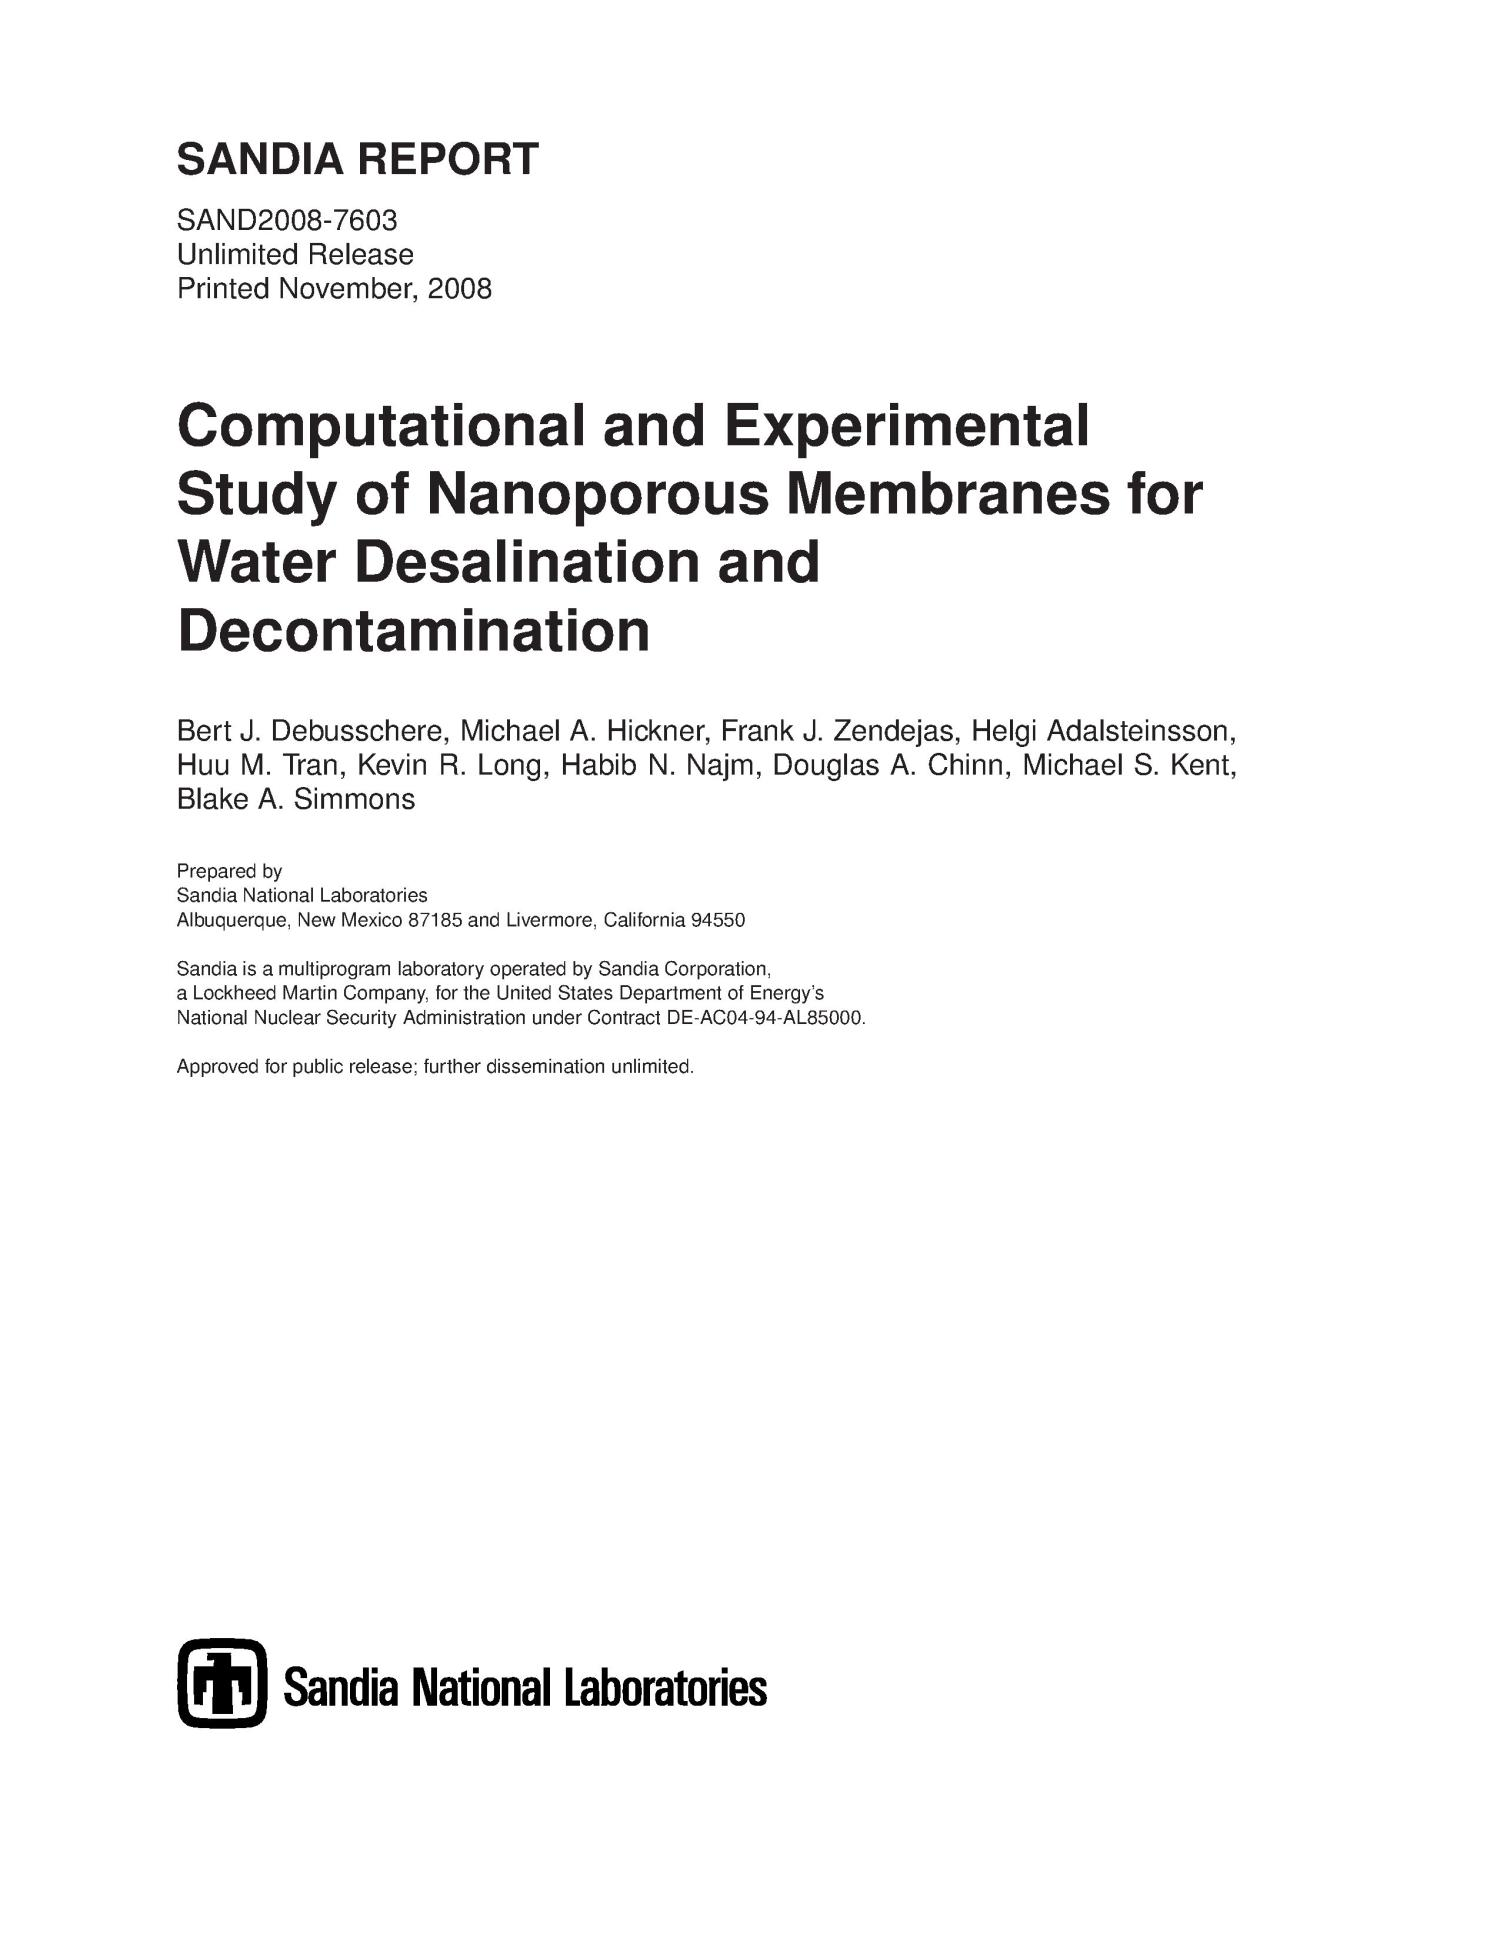 putational and experimental study of nanoporous membranes for